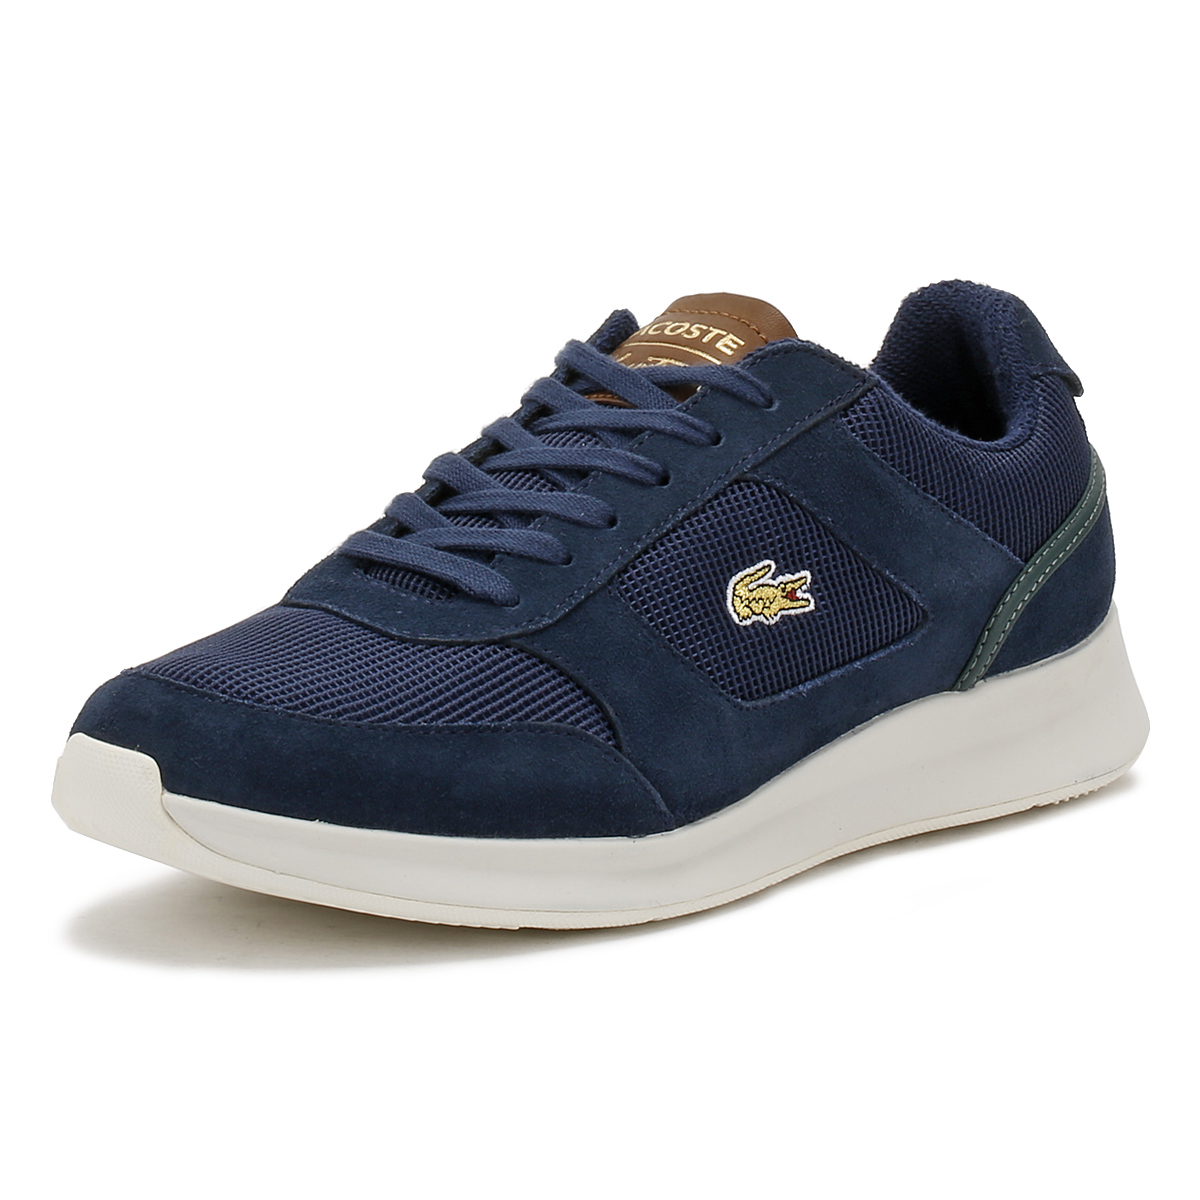 lacoste shoes vietnam made war ship video game